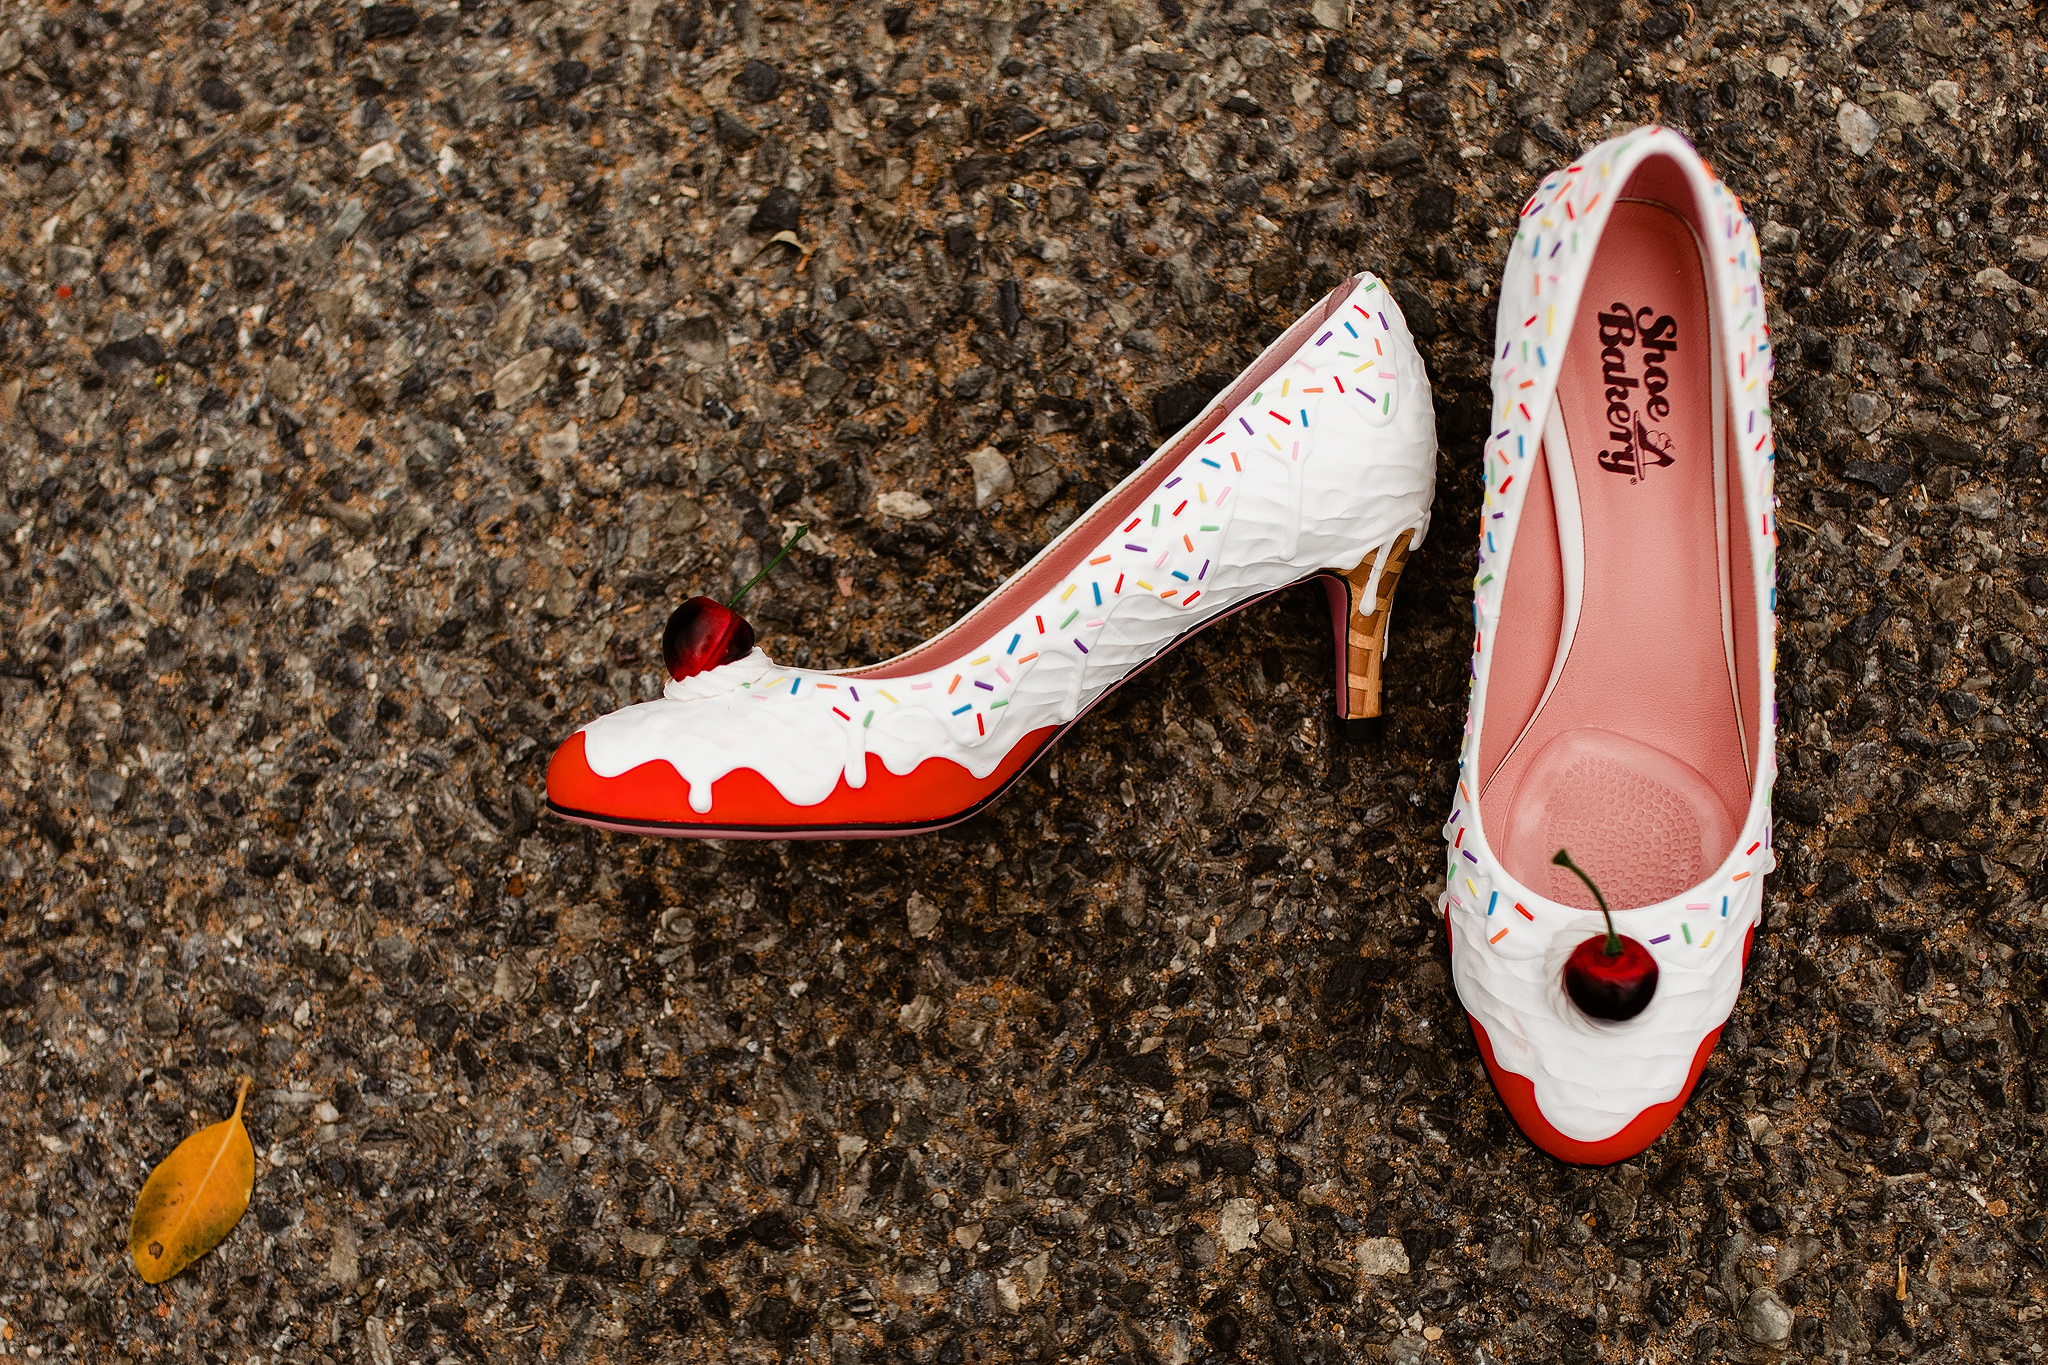 ice cream sundae shoes from the Shoe Bakery photographed by Ruan Redelinghuys - South Africa